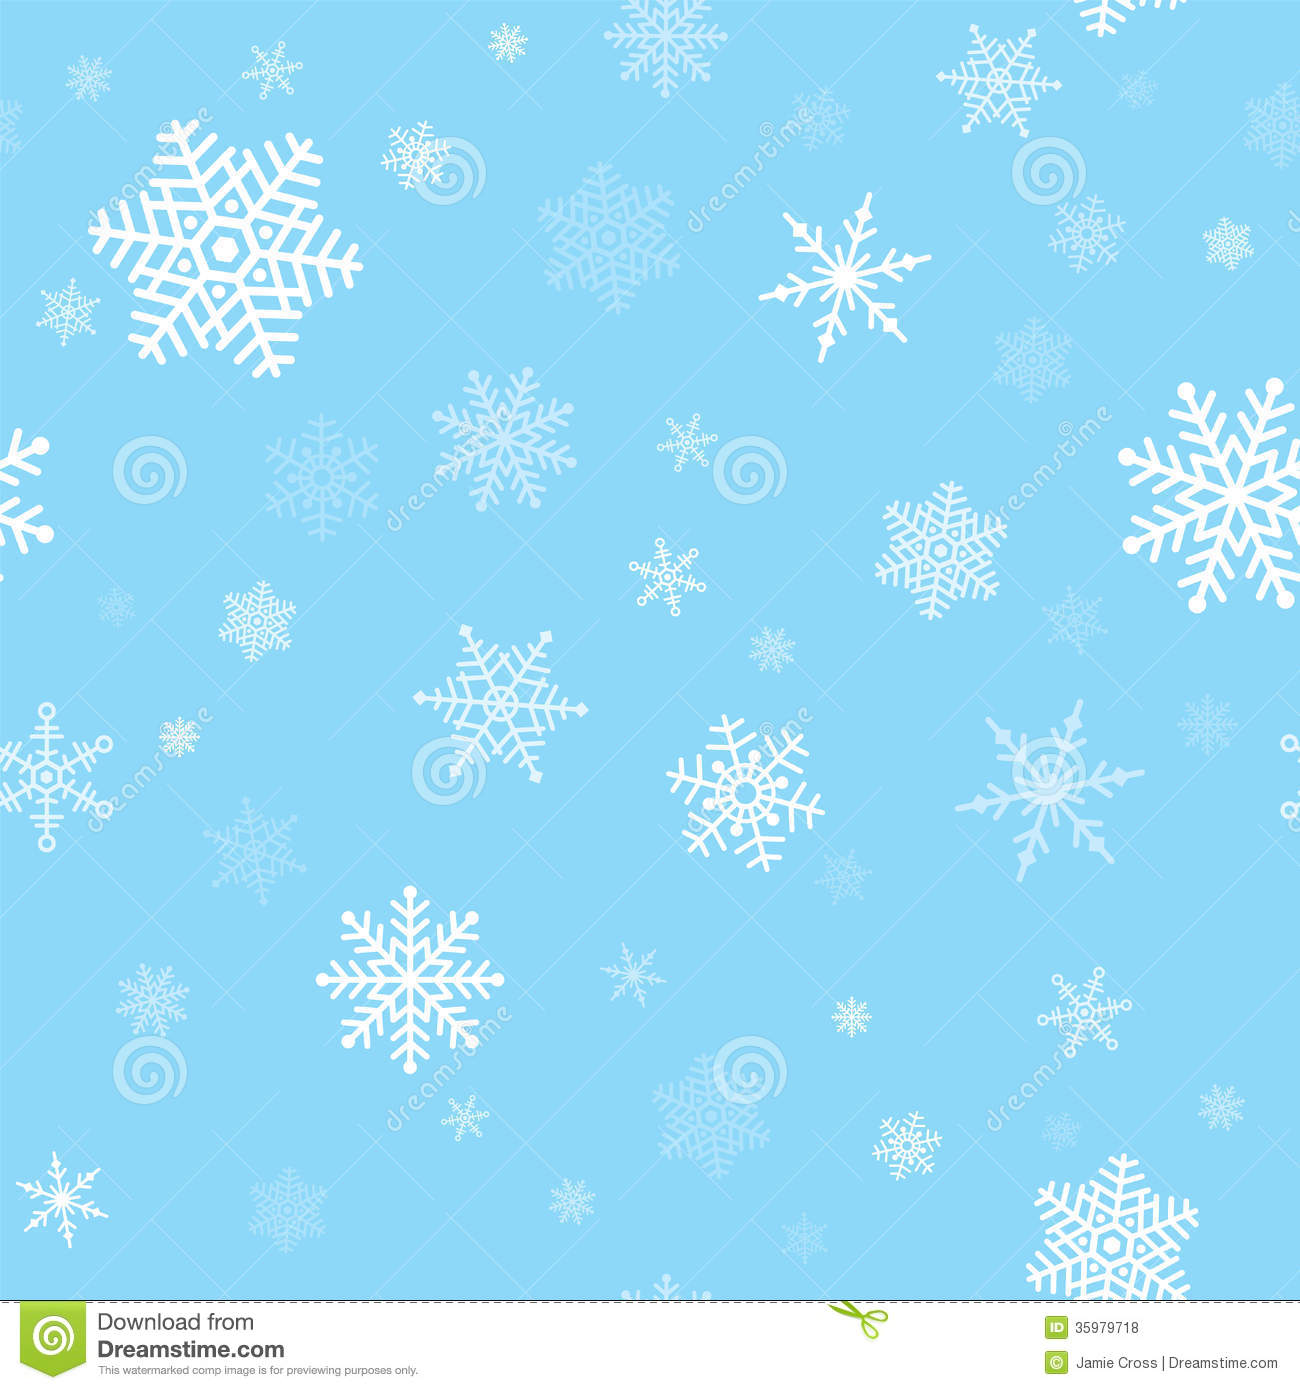 Falling Anow Wallpaper Snowflakes Seamless Pattern Royalty Free Stock Photos